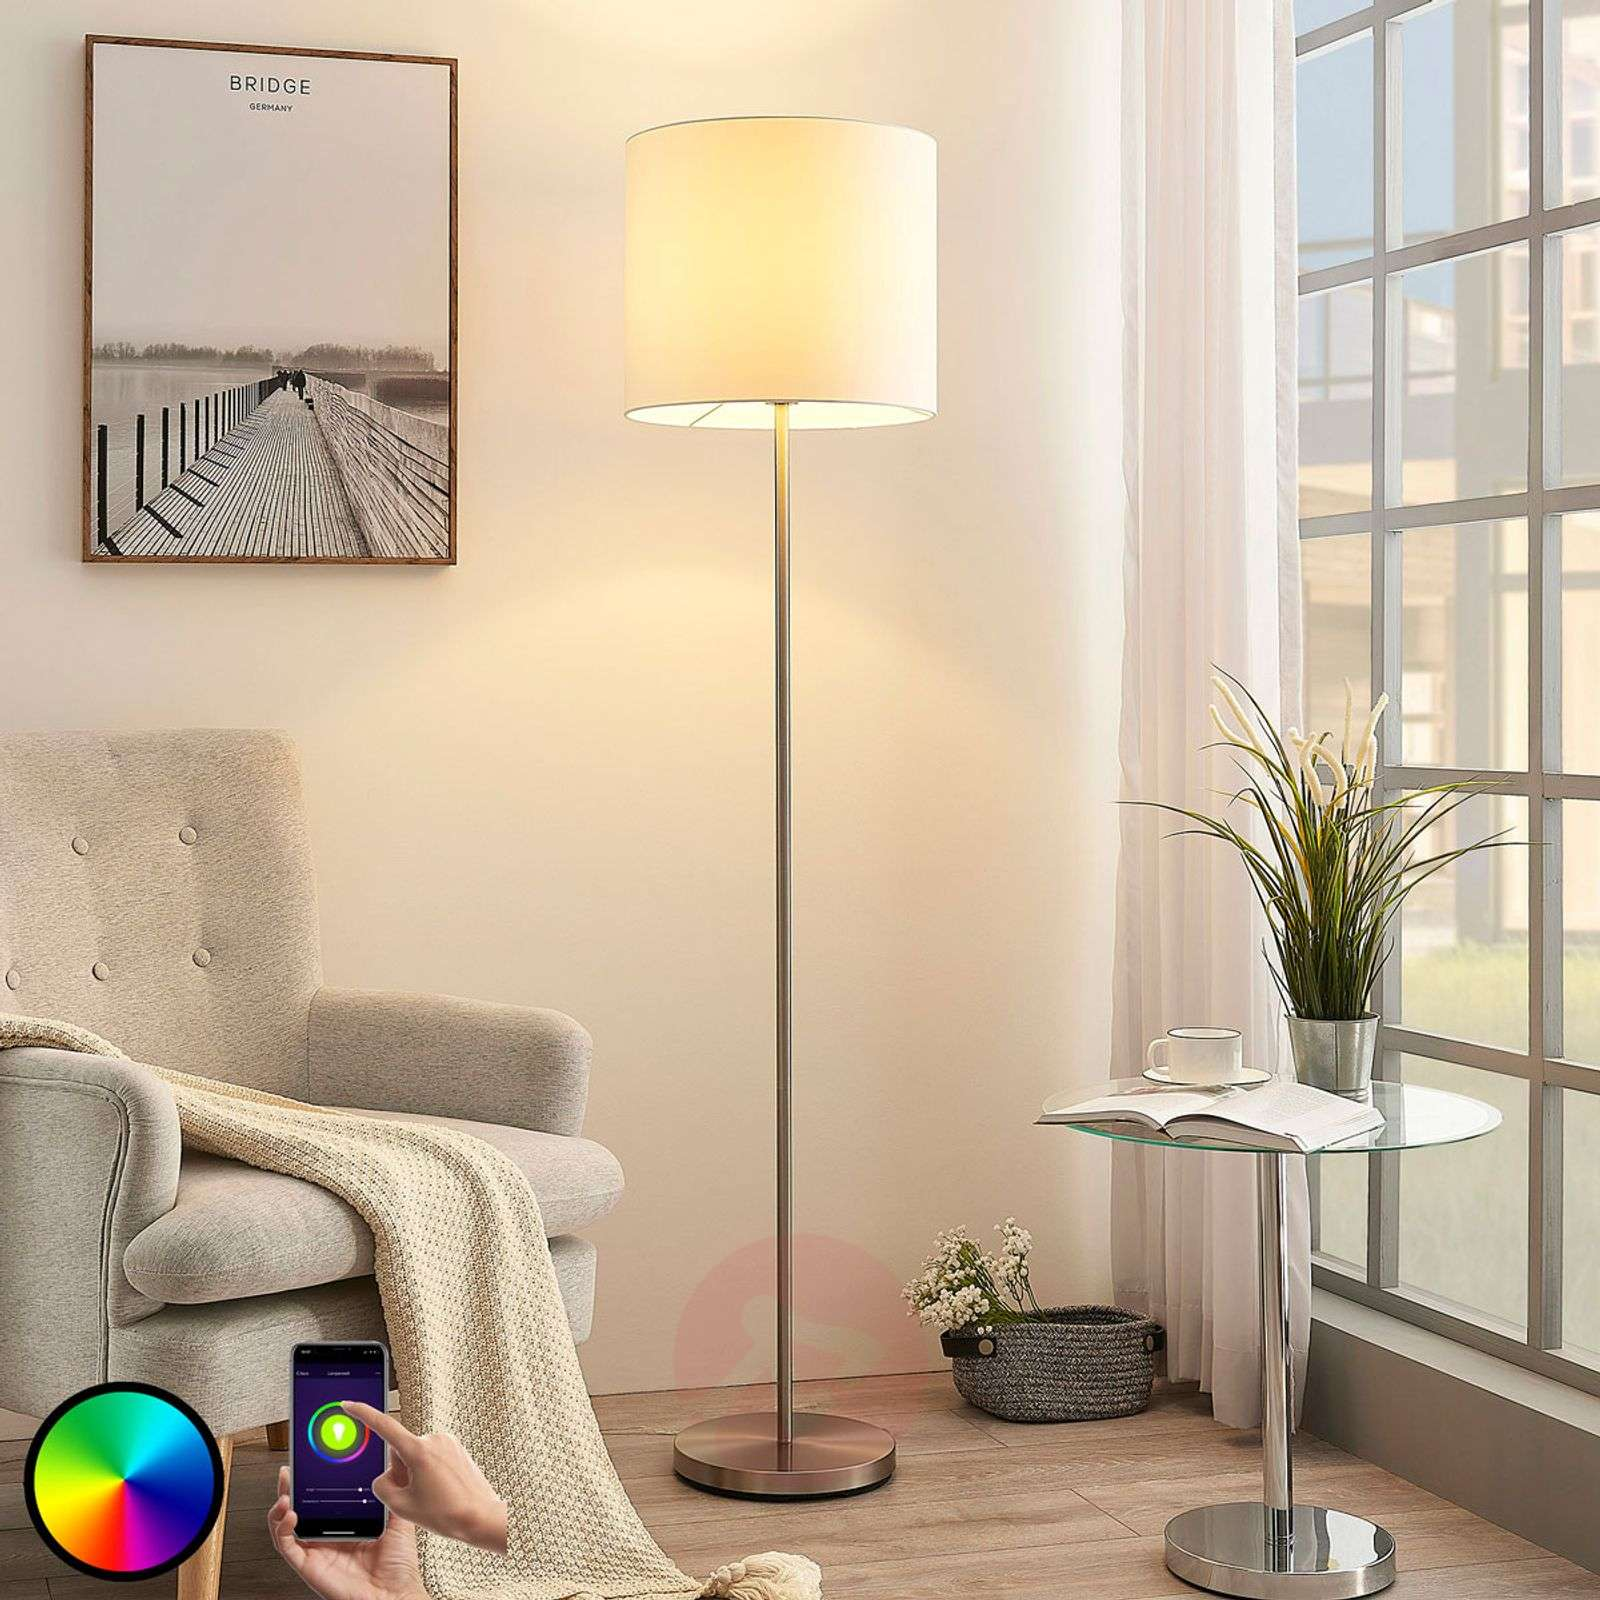 Lindby Smart lampa stojąca LED Everly, app, RGB